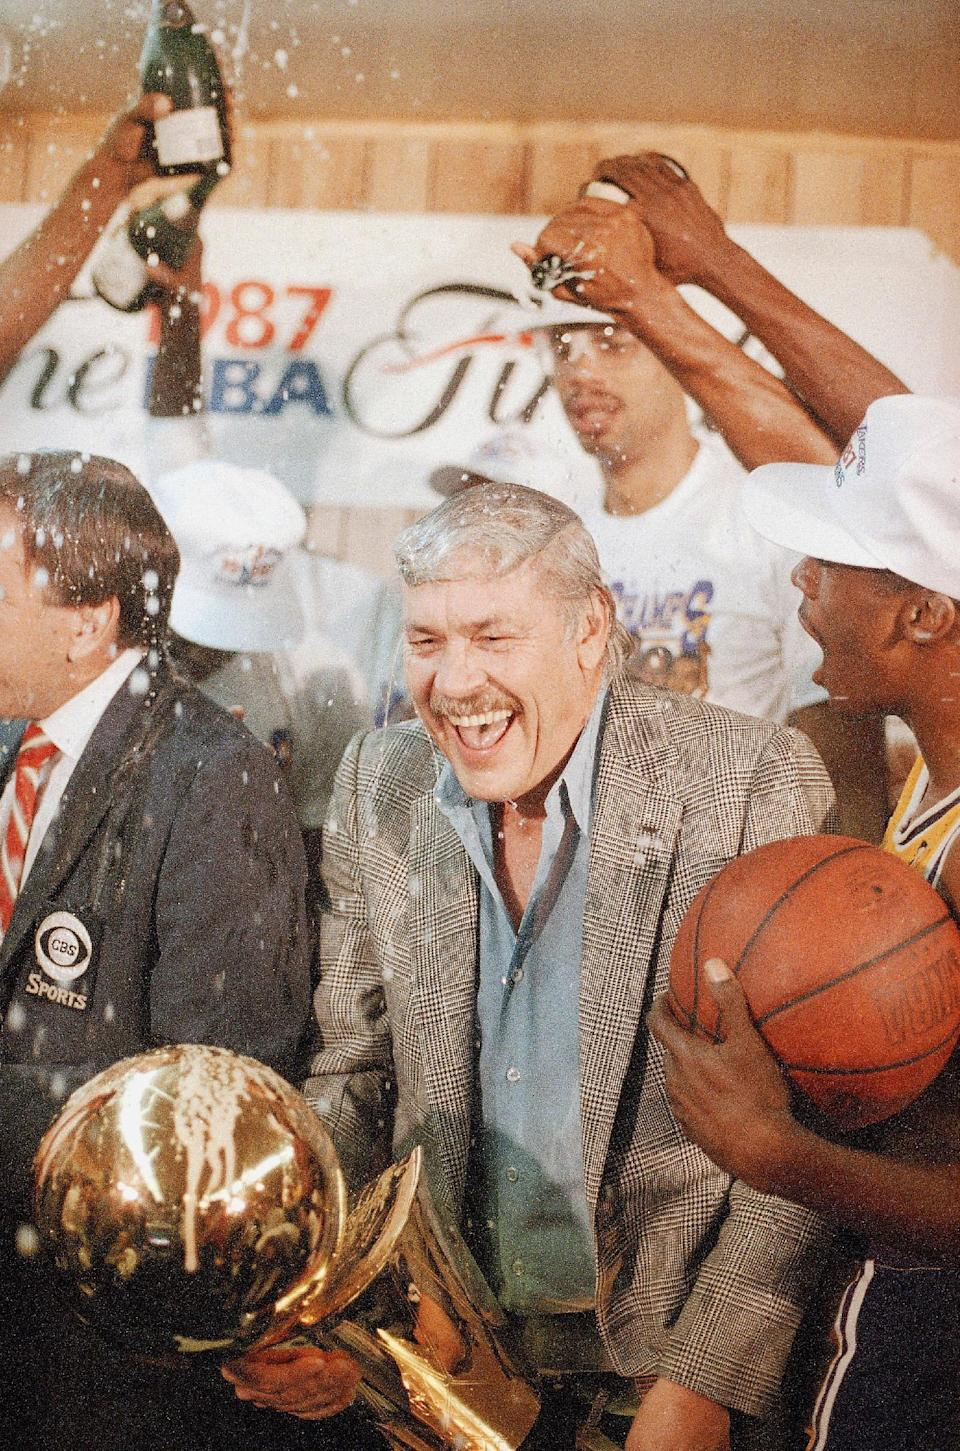 FILE - In this June 15, 1987 file photo, Los Angeles Lakers owner Jerry Buss gets doused with champagne from members of his team as he holds the NBA Championship trophy after the Lakers defeated the Boston Celtics 106-93 to win the NBA Championship four games to two in Inglewood, Calif. Buss, the Lakers' playboy owner who shepherded the NBA franchise to 10 championships, has died. He was 80. Bob Steiner, an assistant to Buss, confirmed Monday, Feb. 18, 2013 that Buss had died in Los Angeles. Further details were not available. (AP Photo/Lennox Mclendon, File)